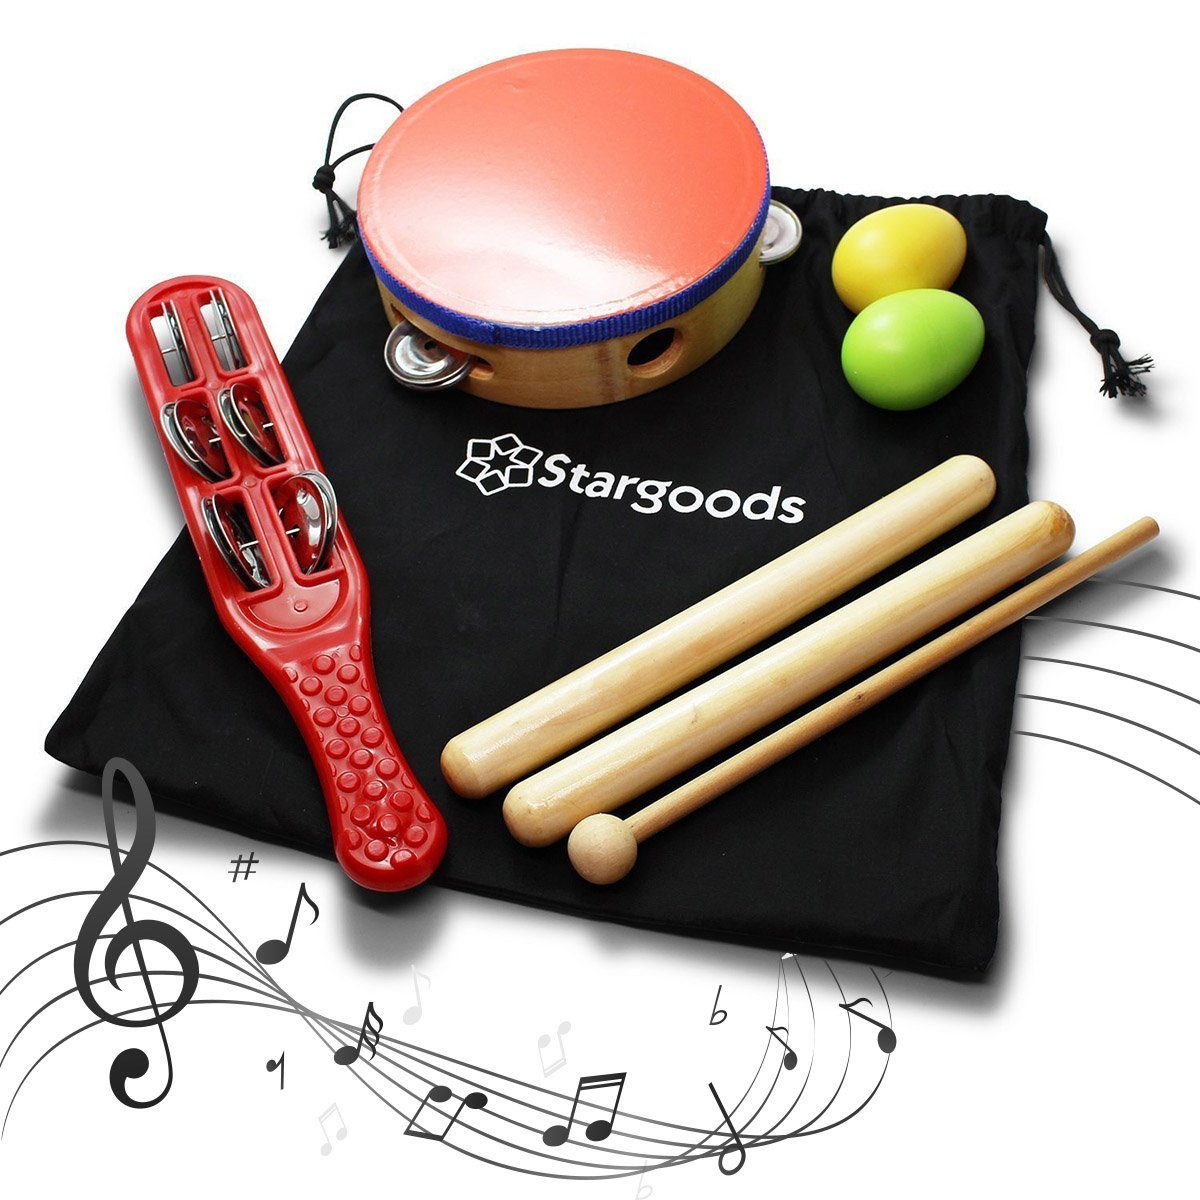 Stargoods Percussion Instruments Set (Drum, Jingle, Claves & Egg shakers) SG-PERCSET